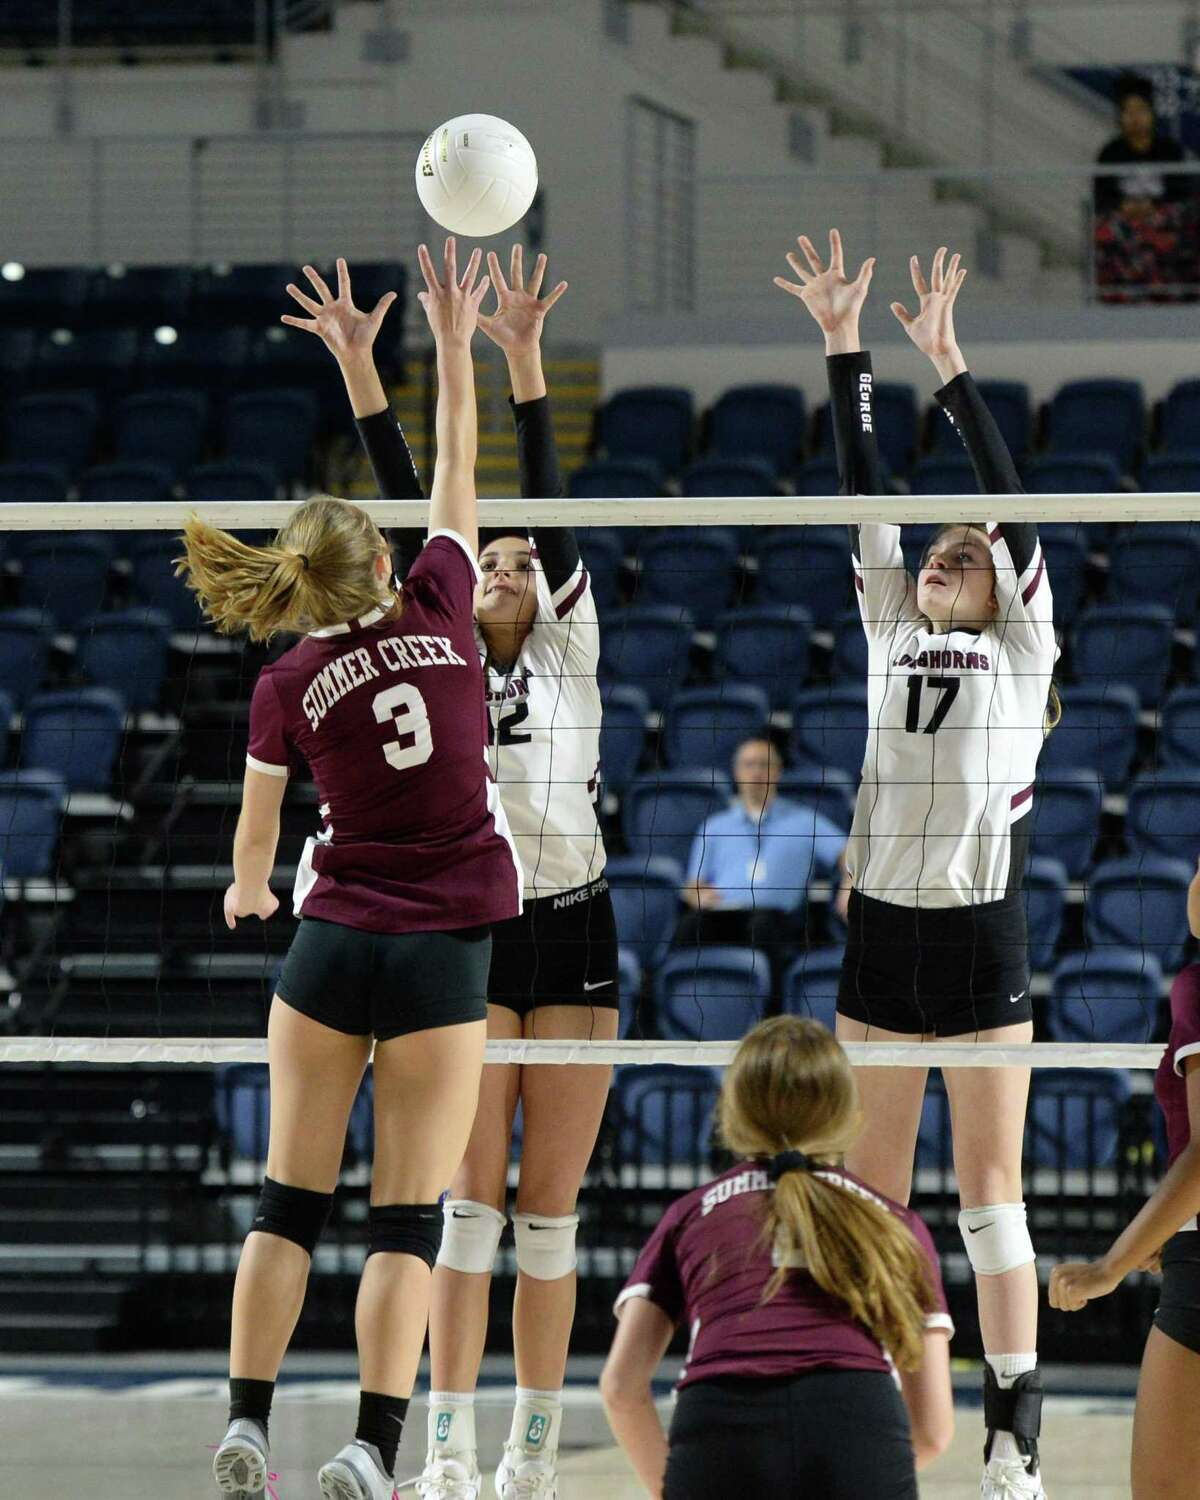 McKay Wilson (3) of Summer Creek attempts a kill shot as Logan Lednicky (12) and Avery Shimaitis (17) of George Ranch go for a block in the first set of a Class 6A Region III Area-round playoff volleyball match between the George Ranch Longhorns vs Summer Creek Bulldogs on Friday, November 2, 2018 at Delmar Fieldhouse, Houston, TX.